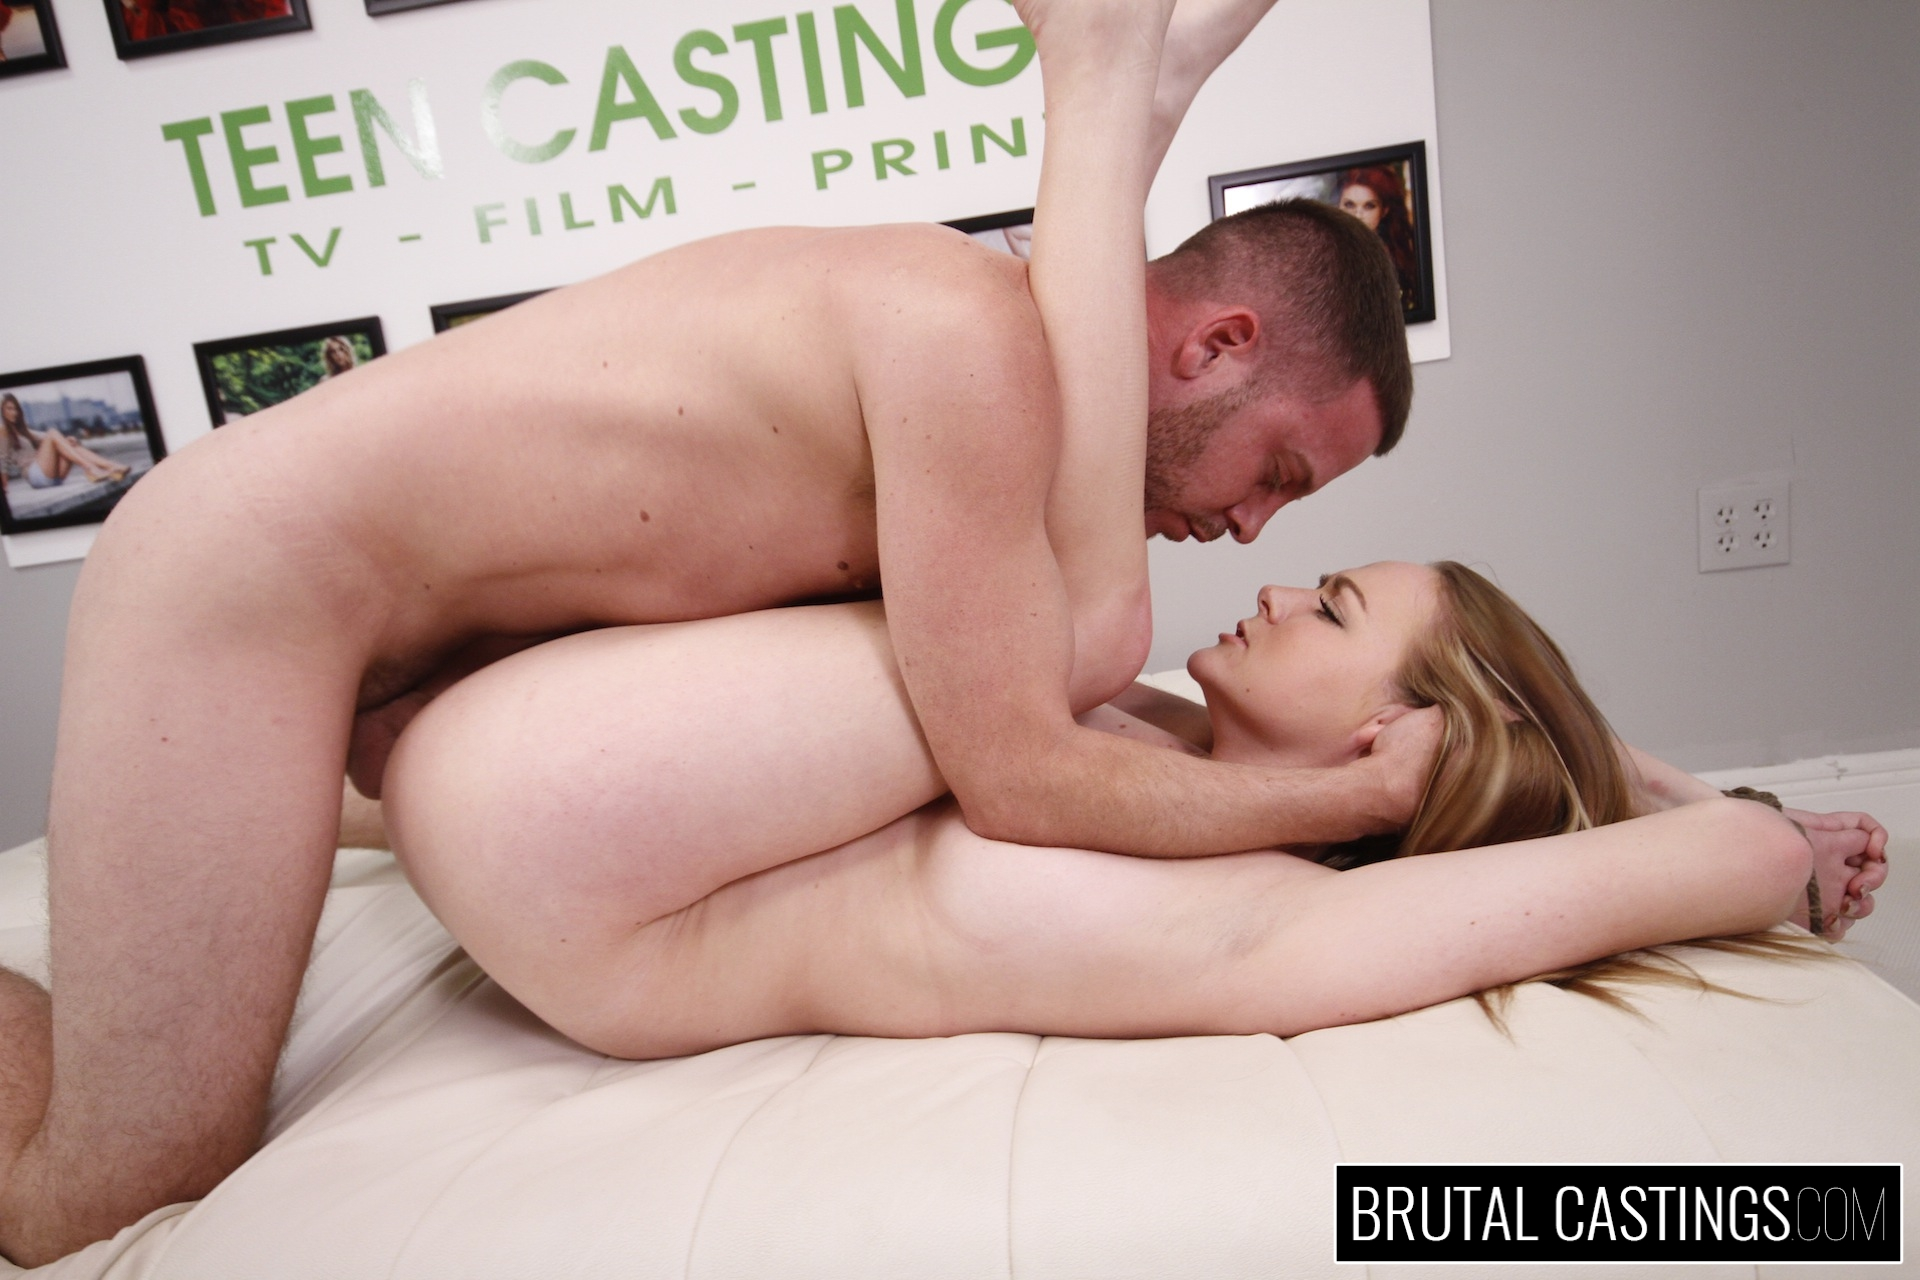 Casting couch with leigh rose. Leigh Rose, a nice bubbly girl next door, is ready to take over the entertainment industry with Teen Castings! She'll do anything to get what she wants. She'll even endure , domination, rope bondage, deepthroat bj, fingering, squirting, spanking, slapping and deep penetration violent sex.